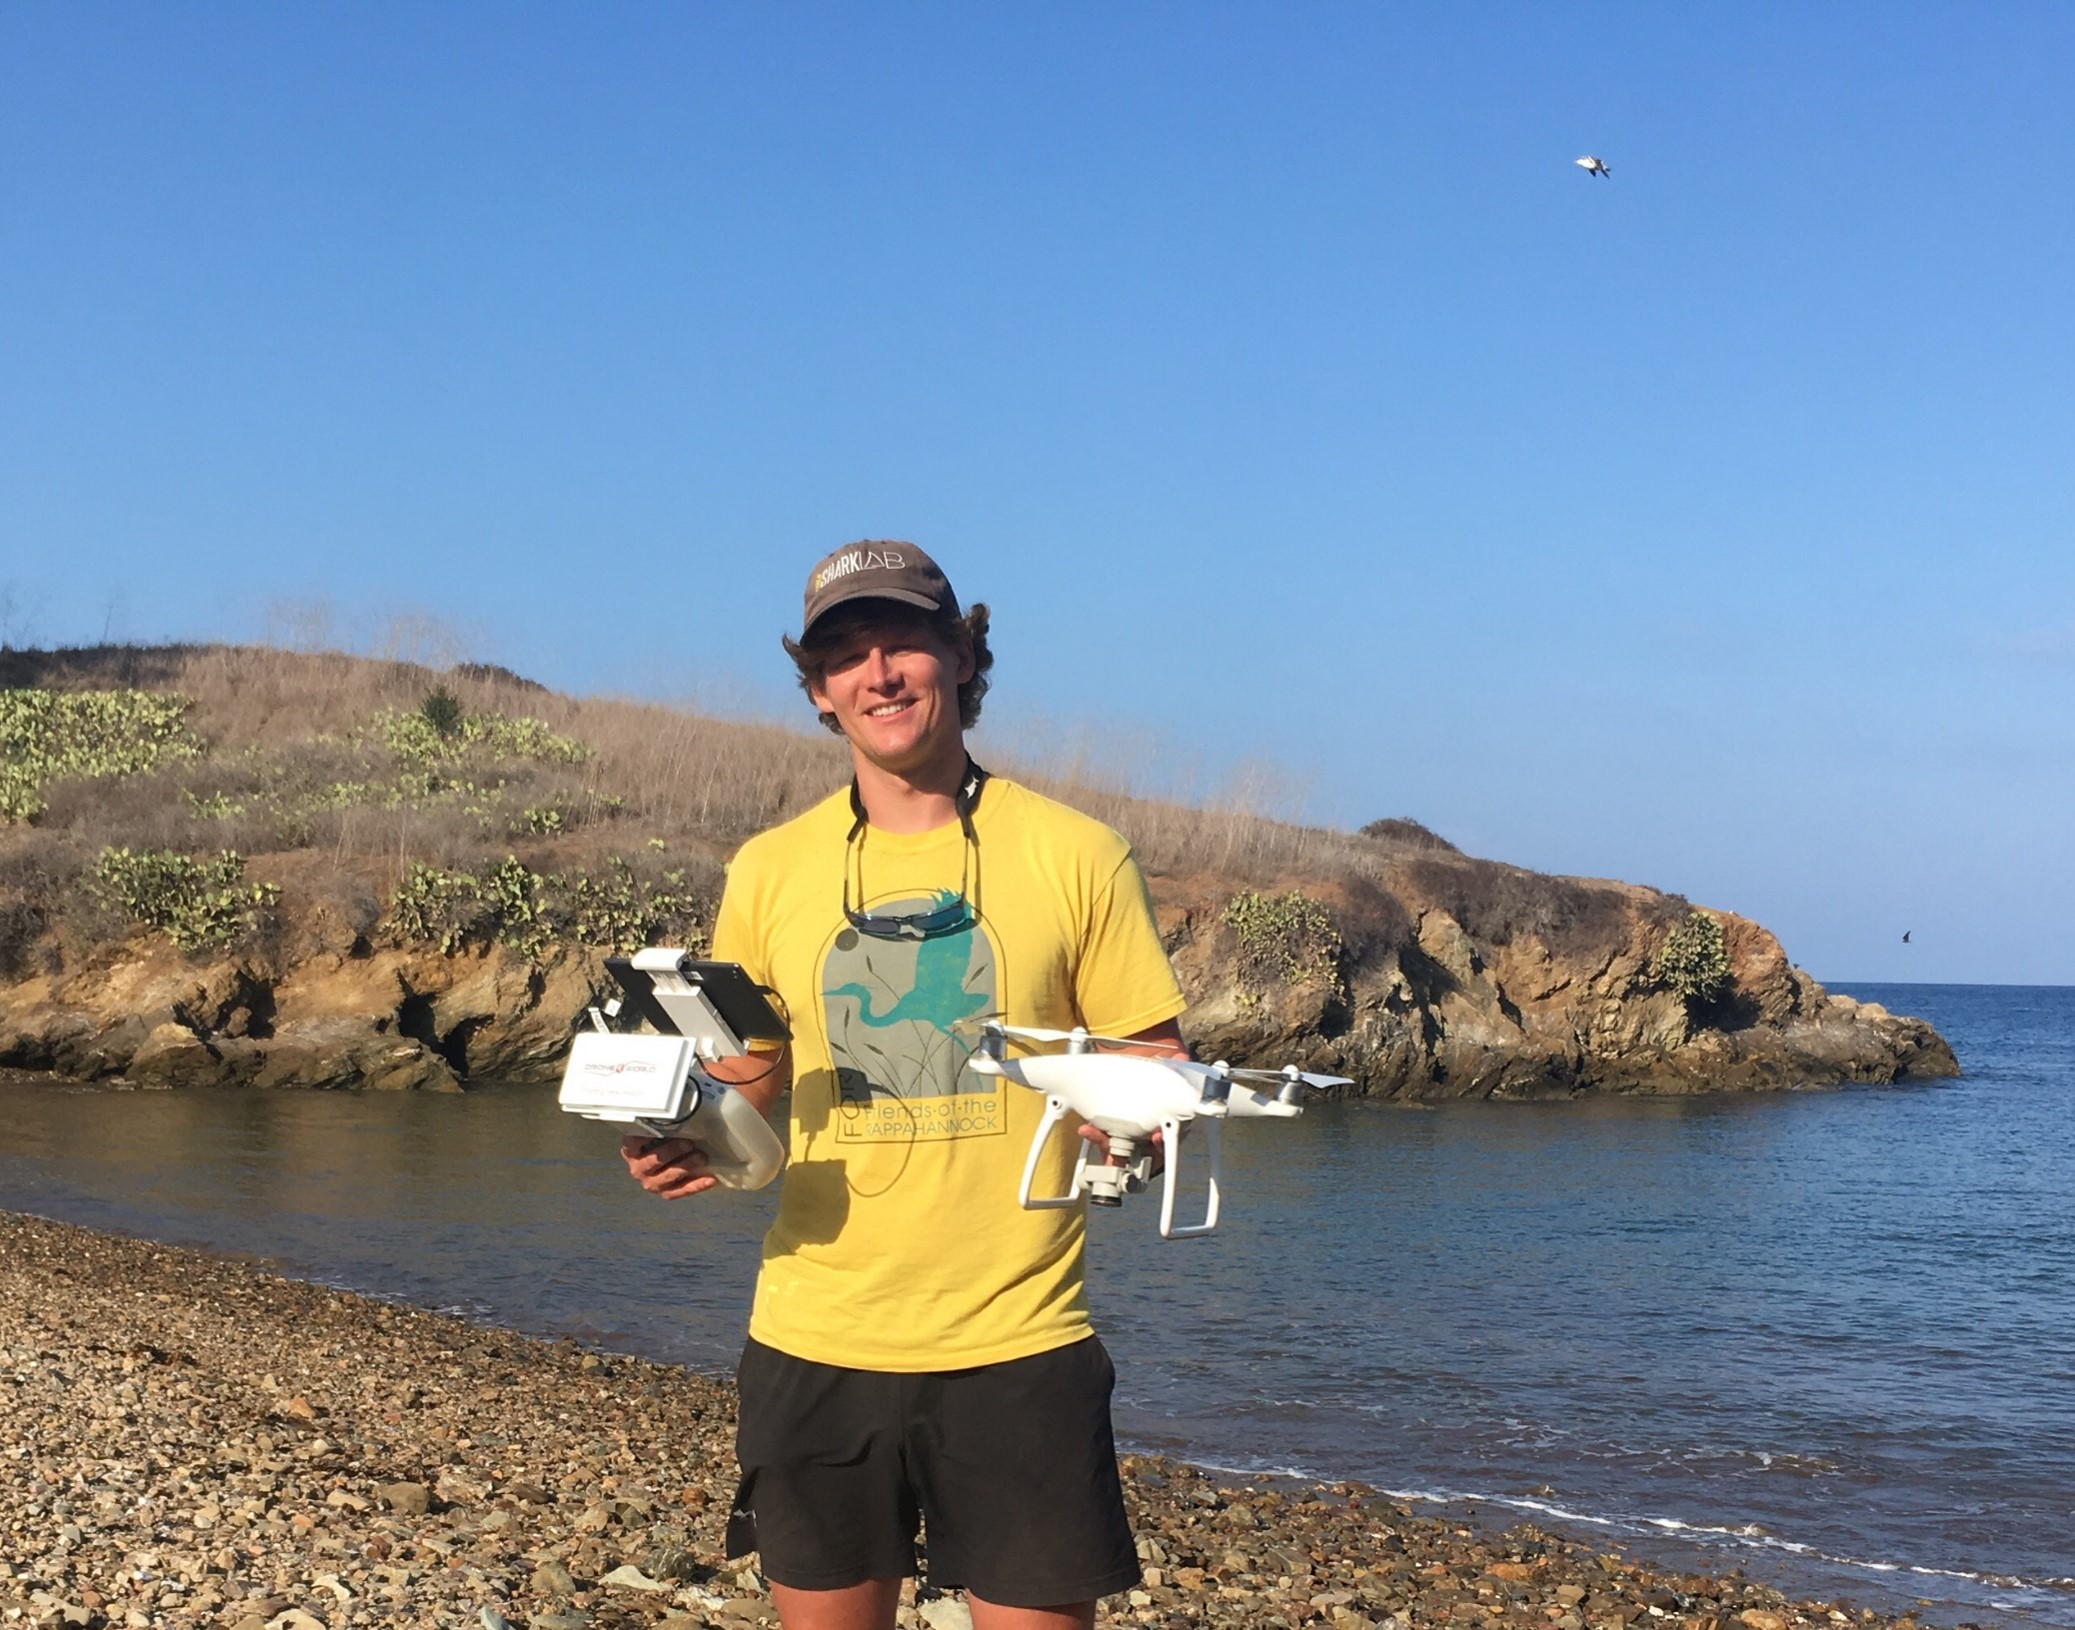 Researcher Jack May holding a drone and temperature loggers used to collect data on sharks